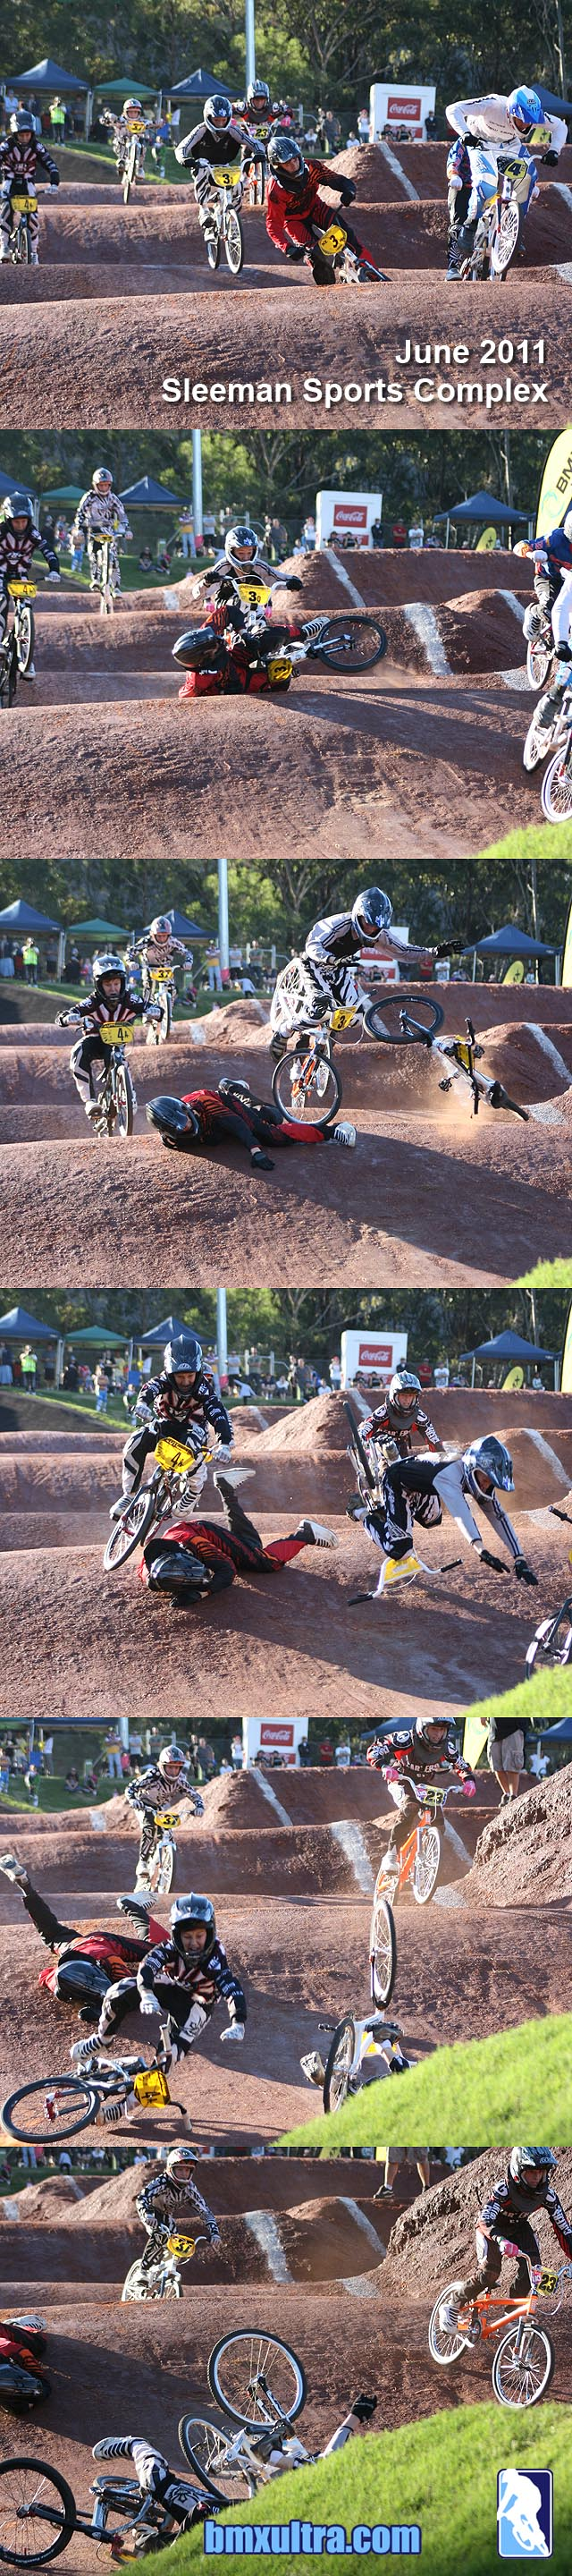 Sleeman opening crash sequence